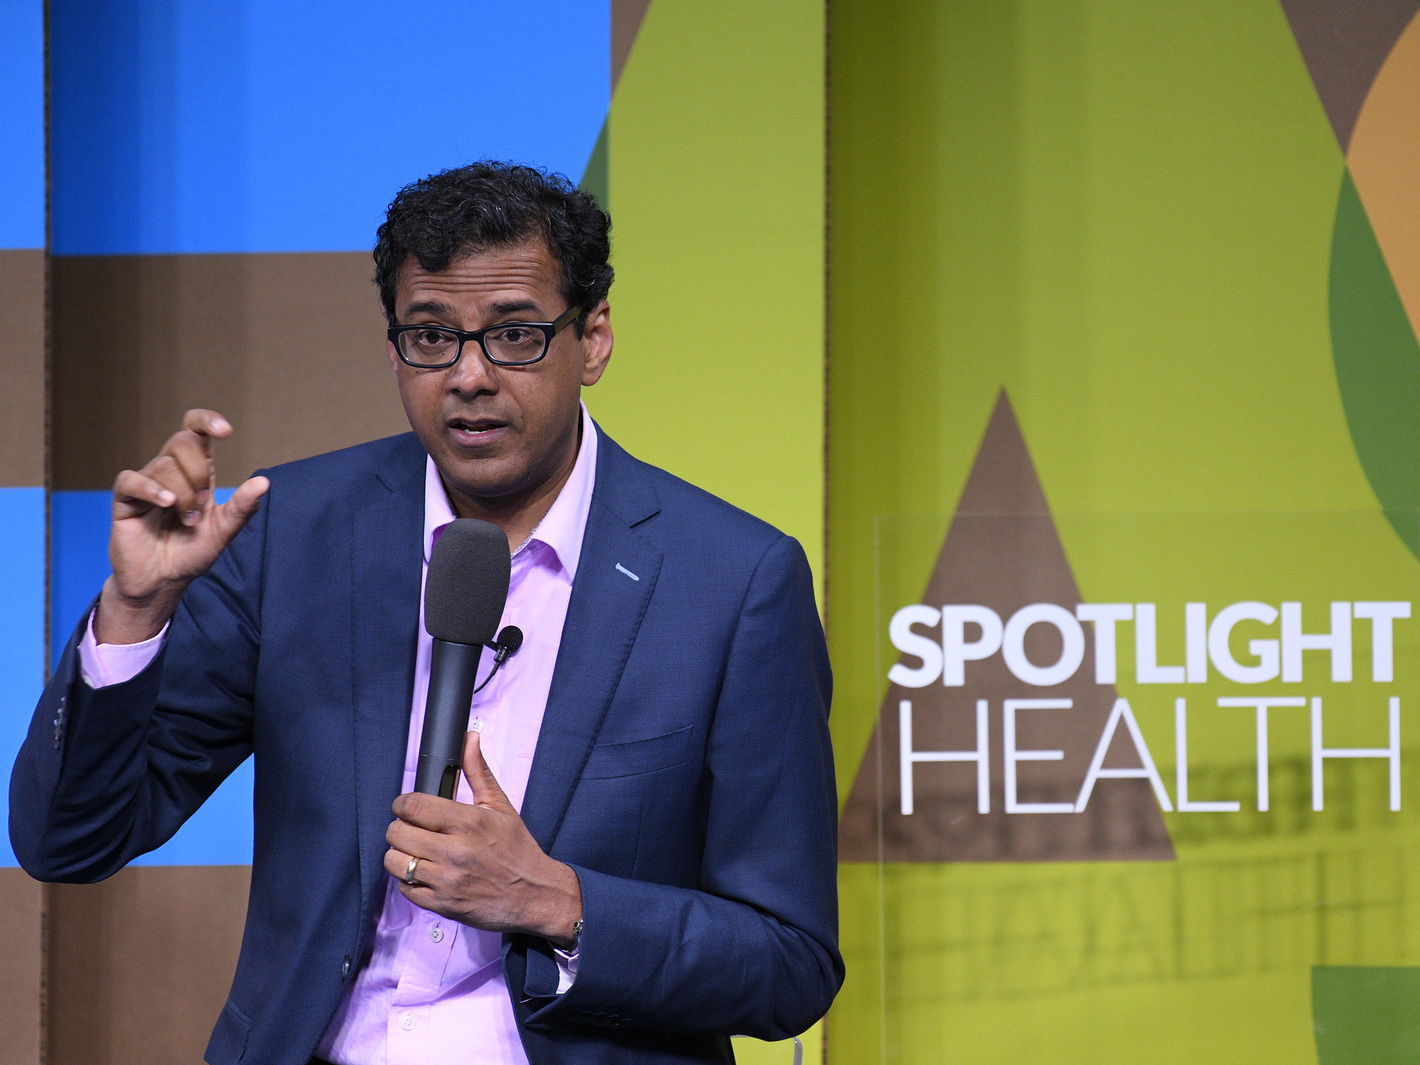 Atul Gawande's Aim For Health Care: 'Make It Simpler To Do The Right Thing'